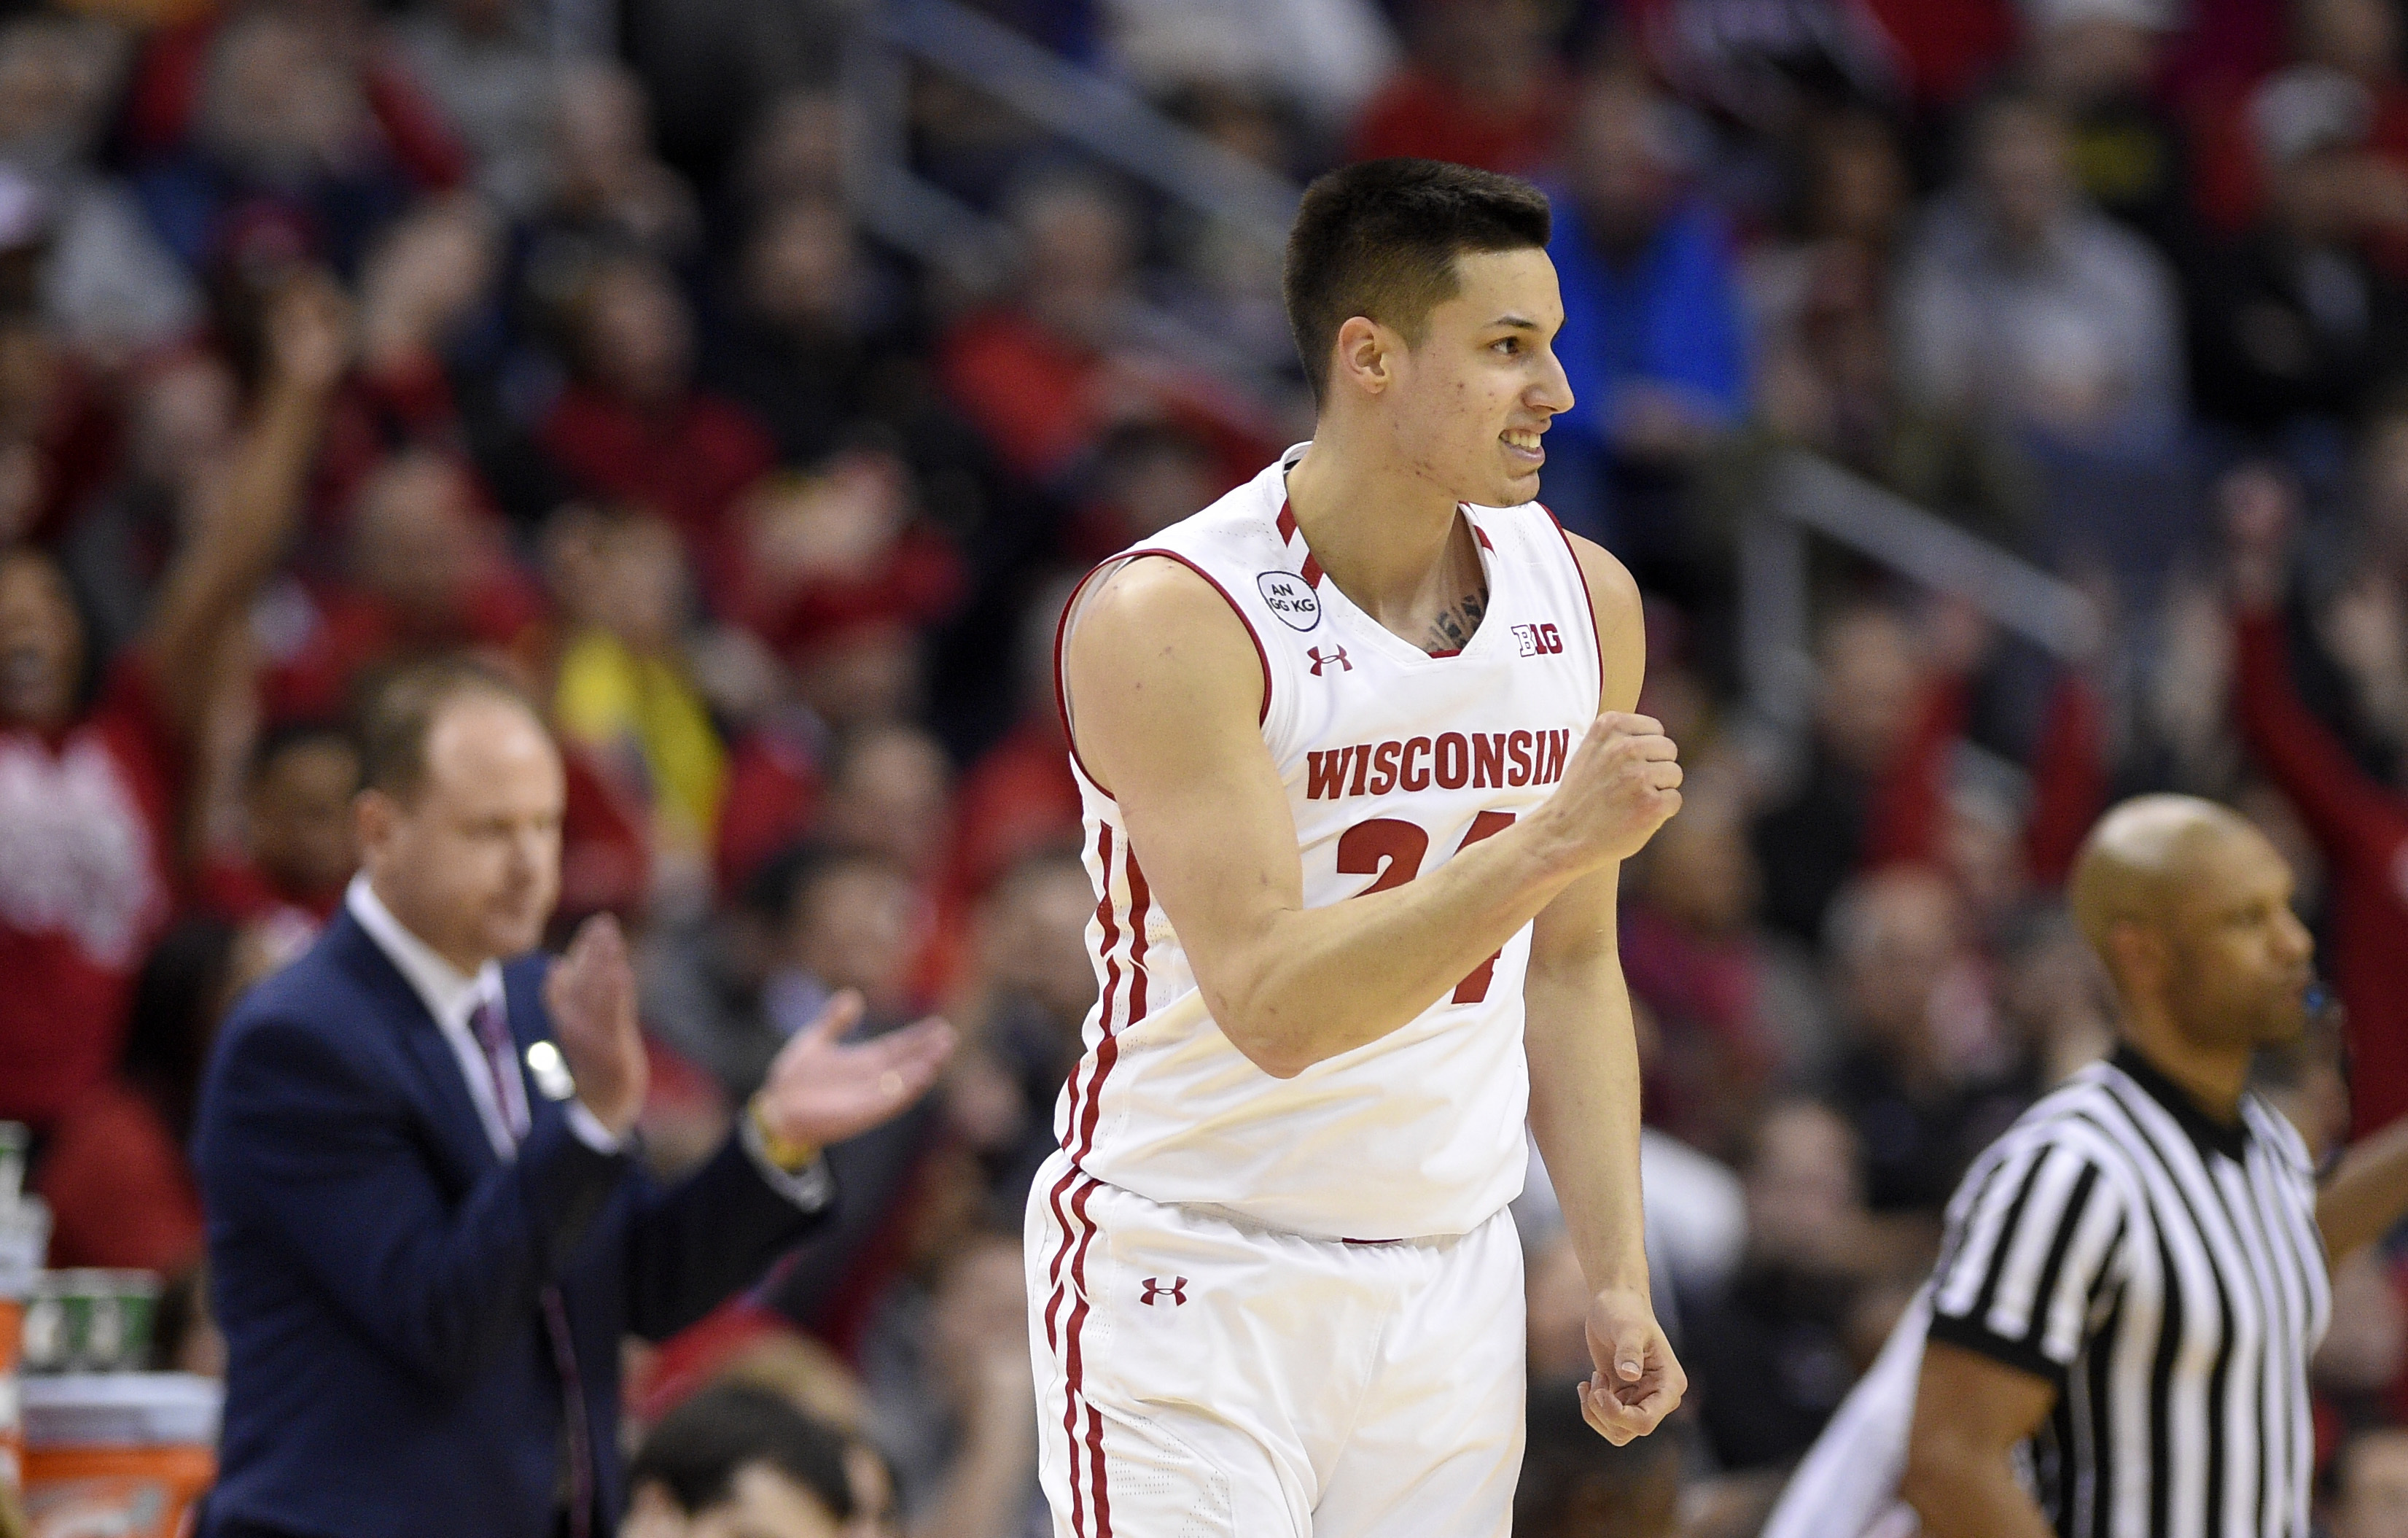 Bulls sign former Badger Bronson Koenig